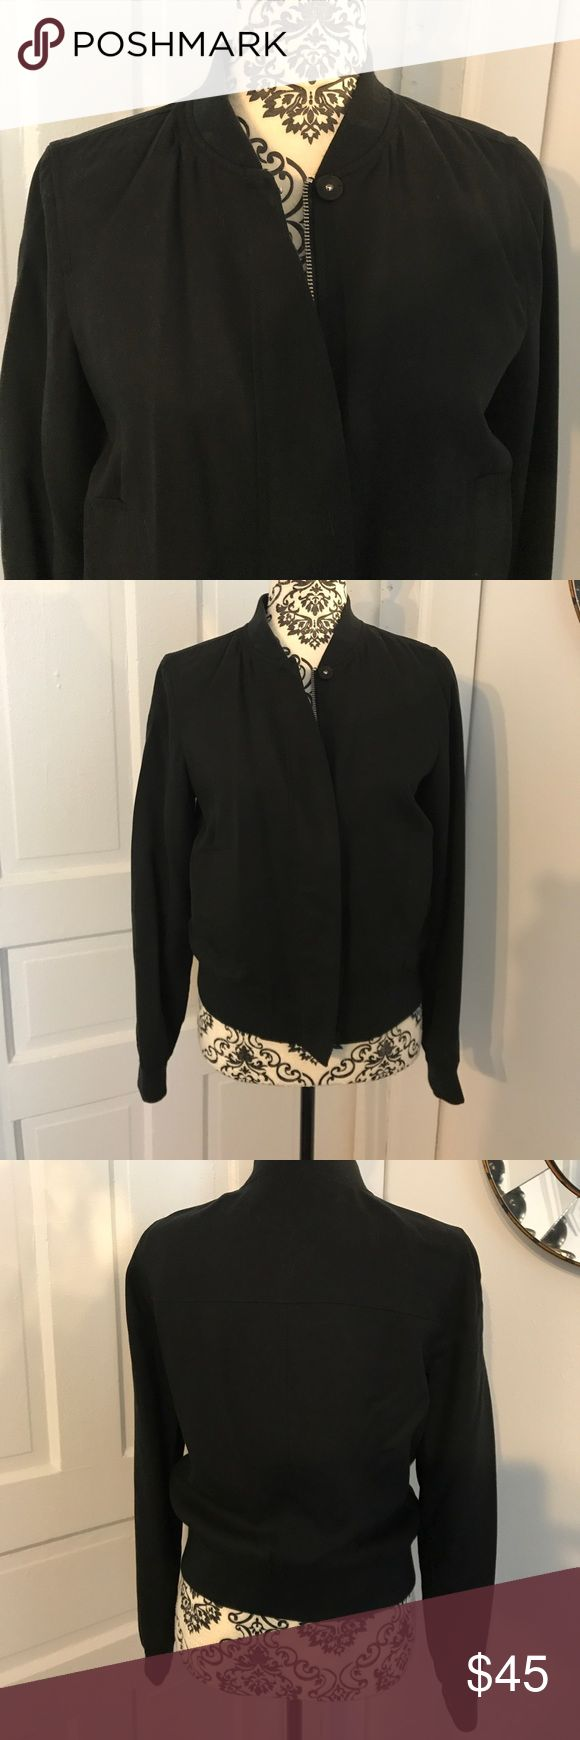 Banana Republic Bomber Style Jacket Perfect for just a little extra coziness. Lightweight and fully lined. worn once. Excellent like new condition. Banana Republic Jackets & Coats